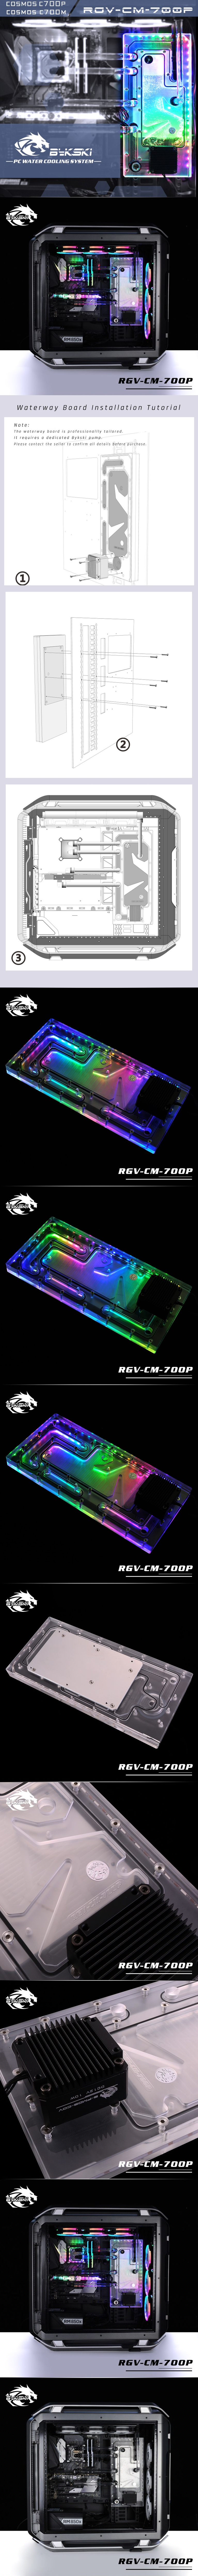 A large marketing image providing additional information about the product Bykski Cooler Master C700P Case RBW Water Distribution Board - Additional alt info not provided